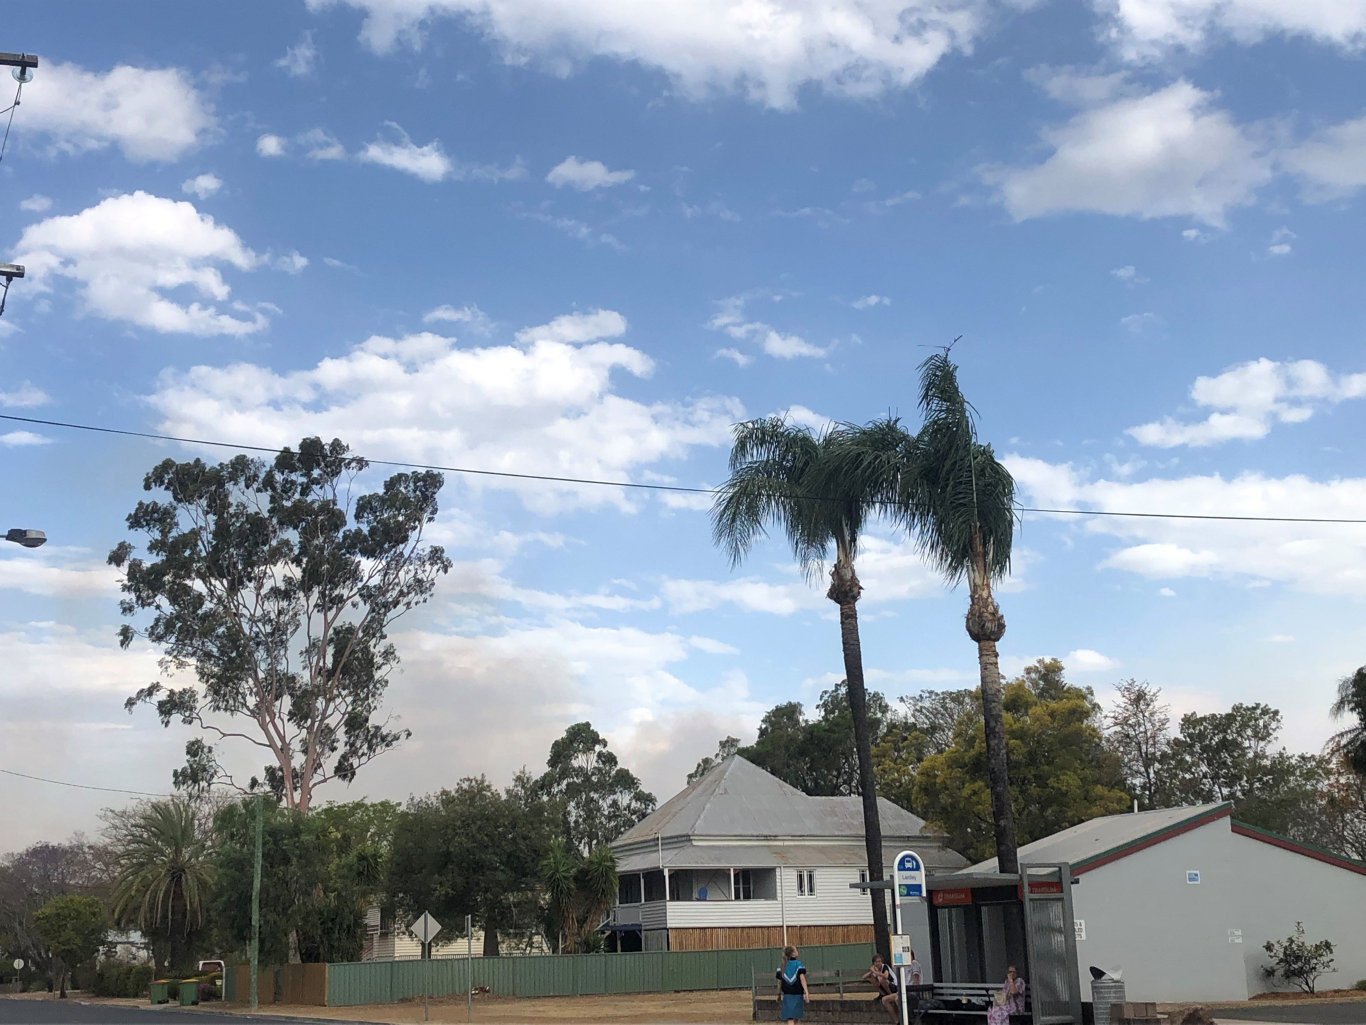 Smoke is visible from Laidley, which has a 'leave now' fire alert.